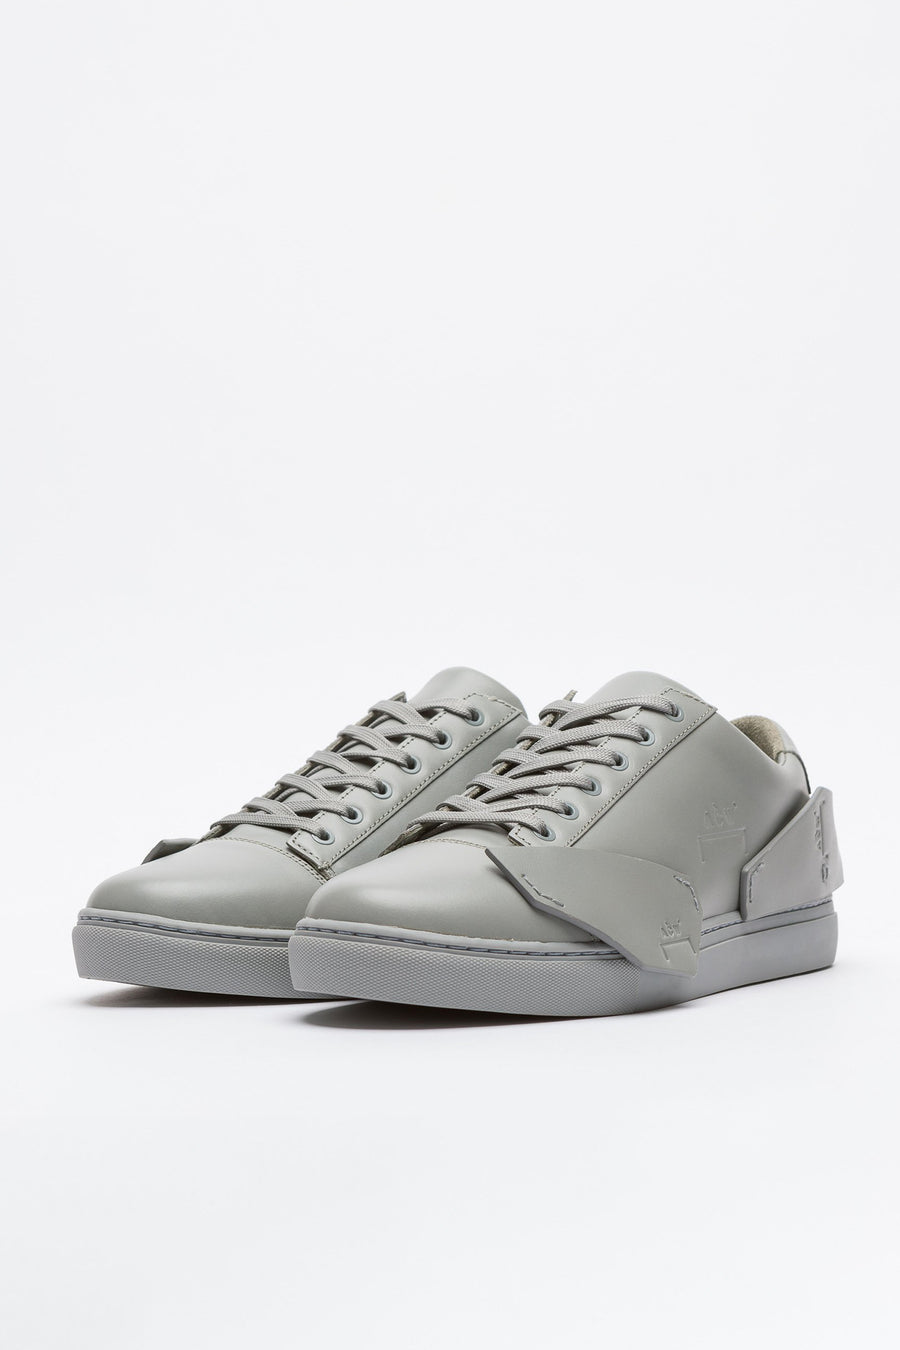 A-COLD-WALL* Multipanel Leather Sneaker in Slate - Notre